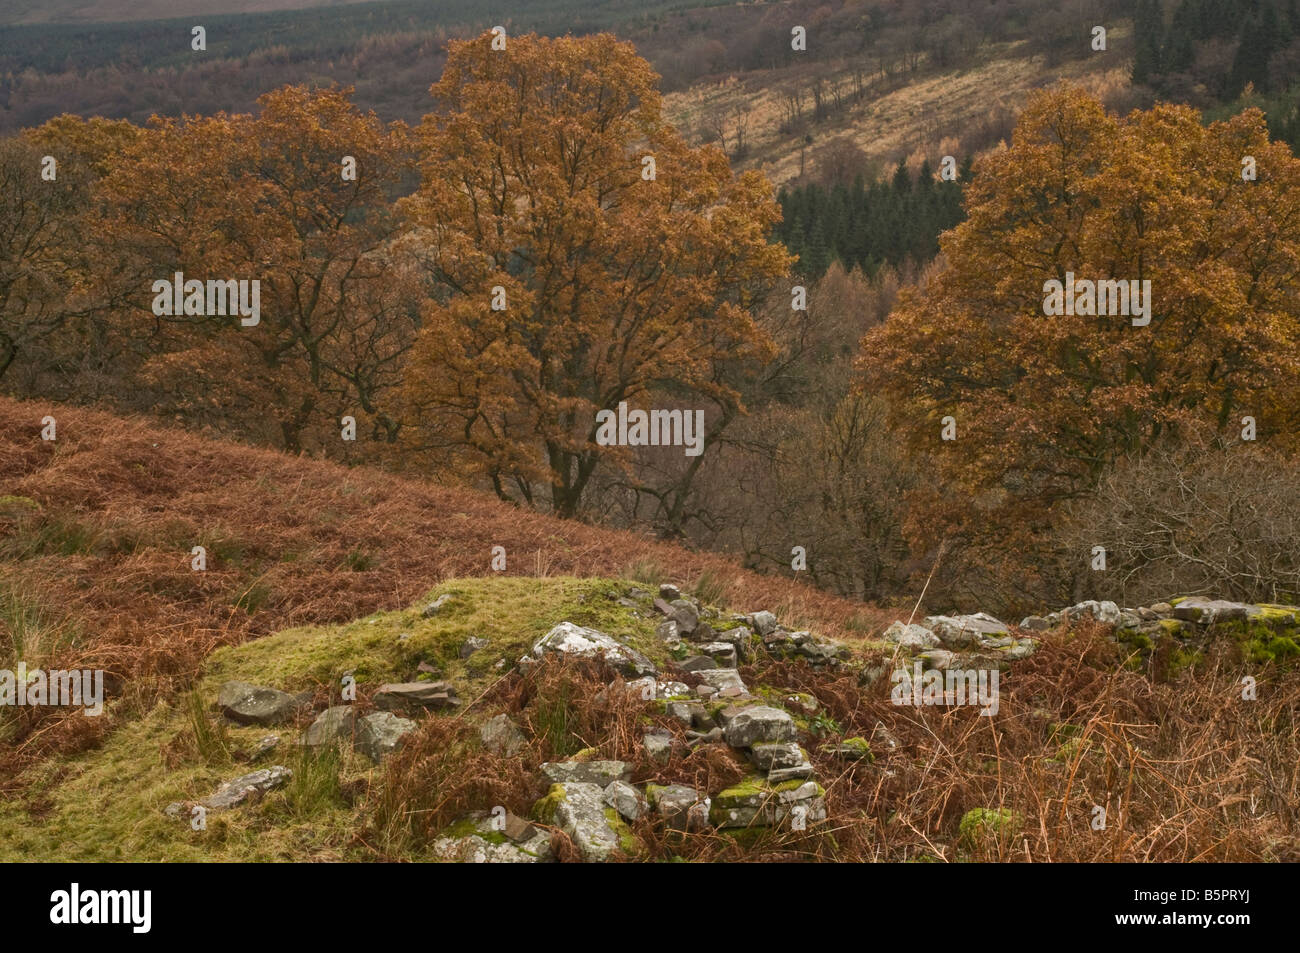 Oak Trees in autumn in the Brecon Beacons Wales - Stock Image